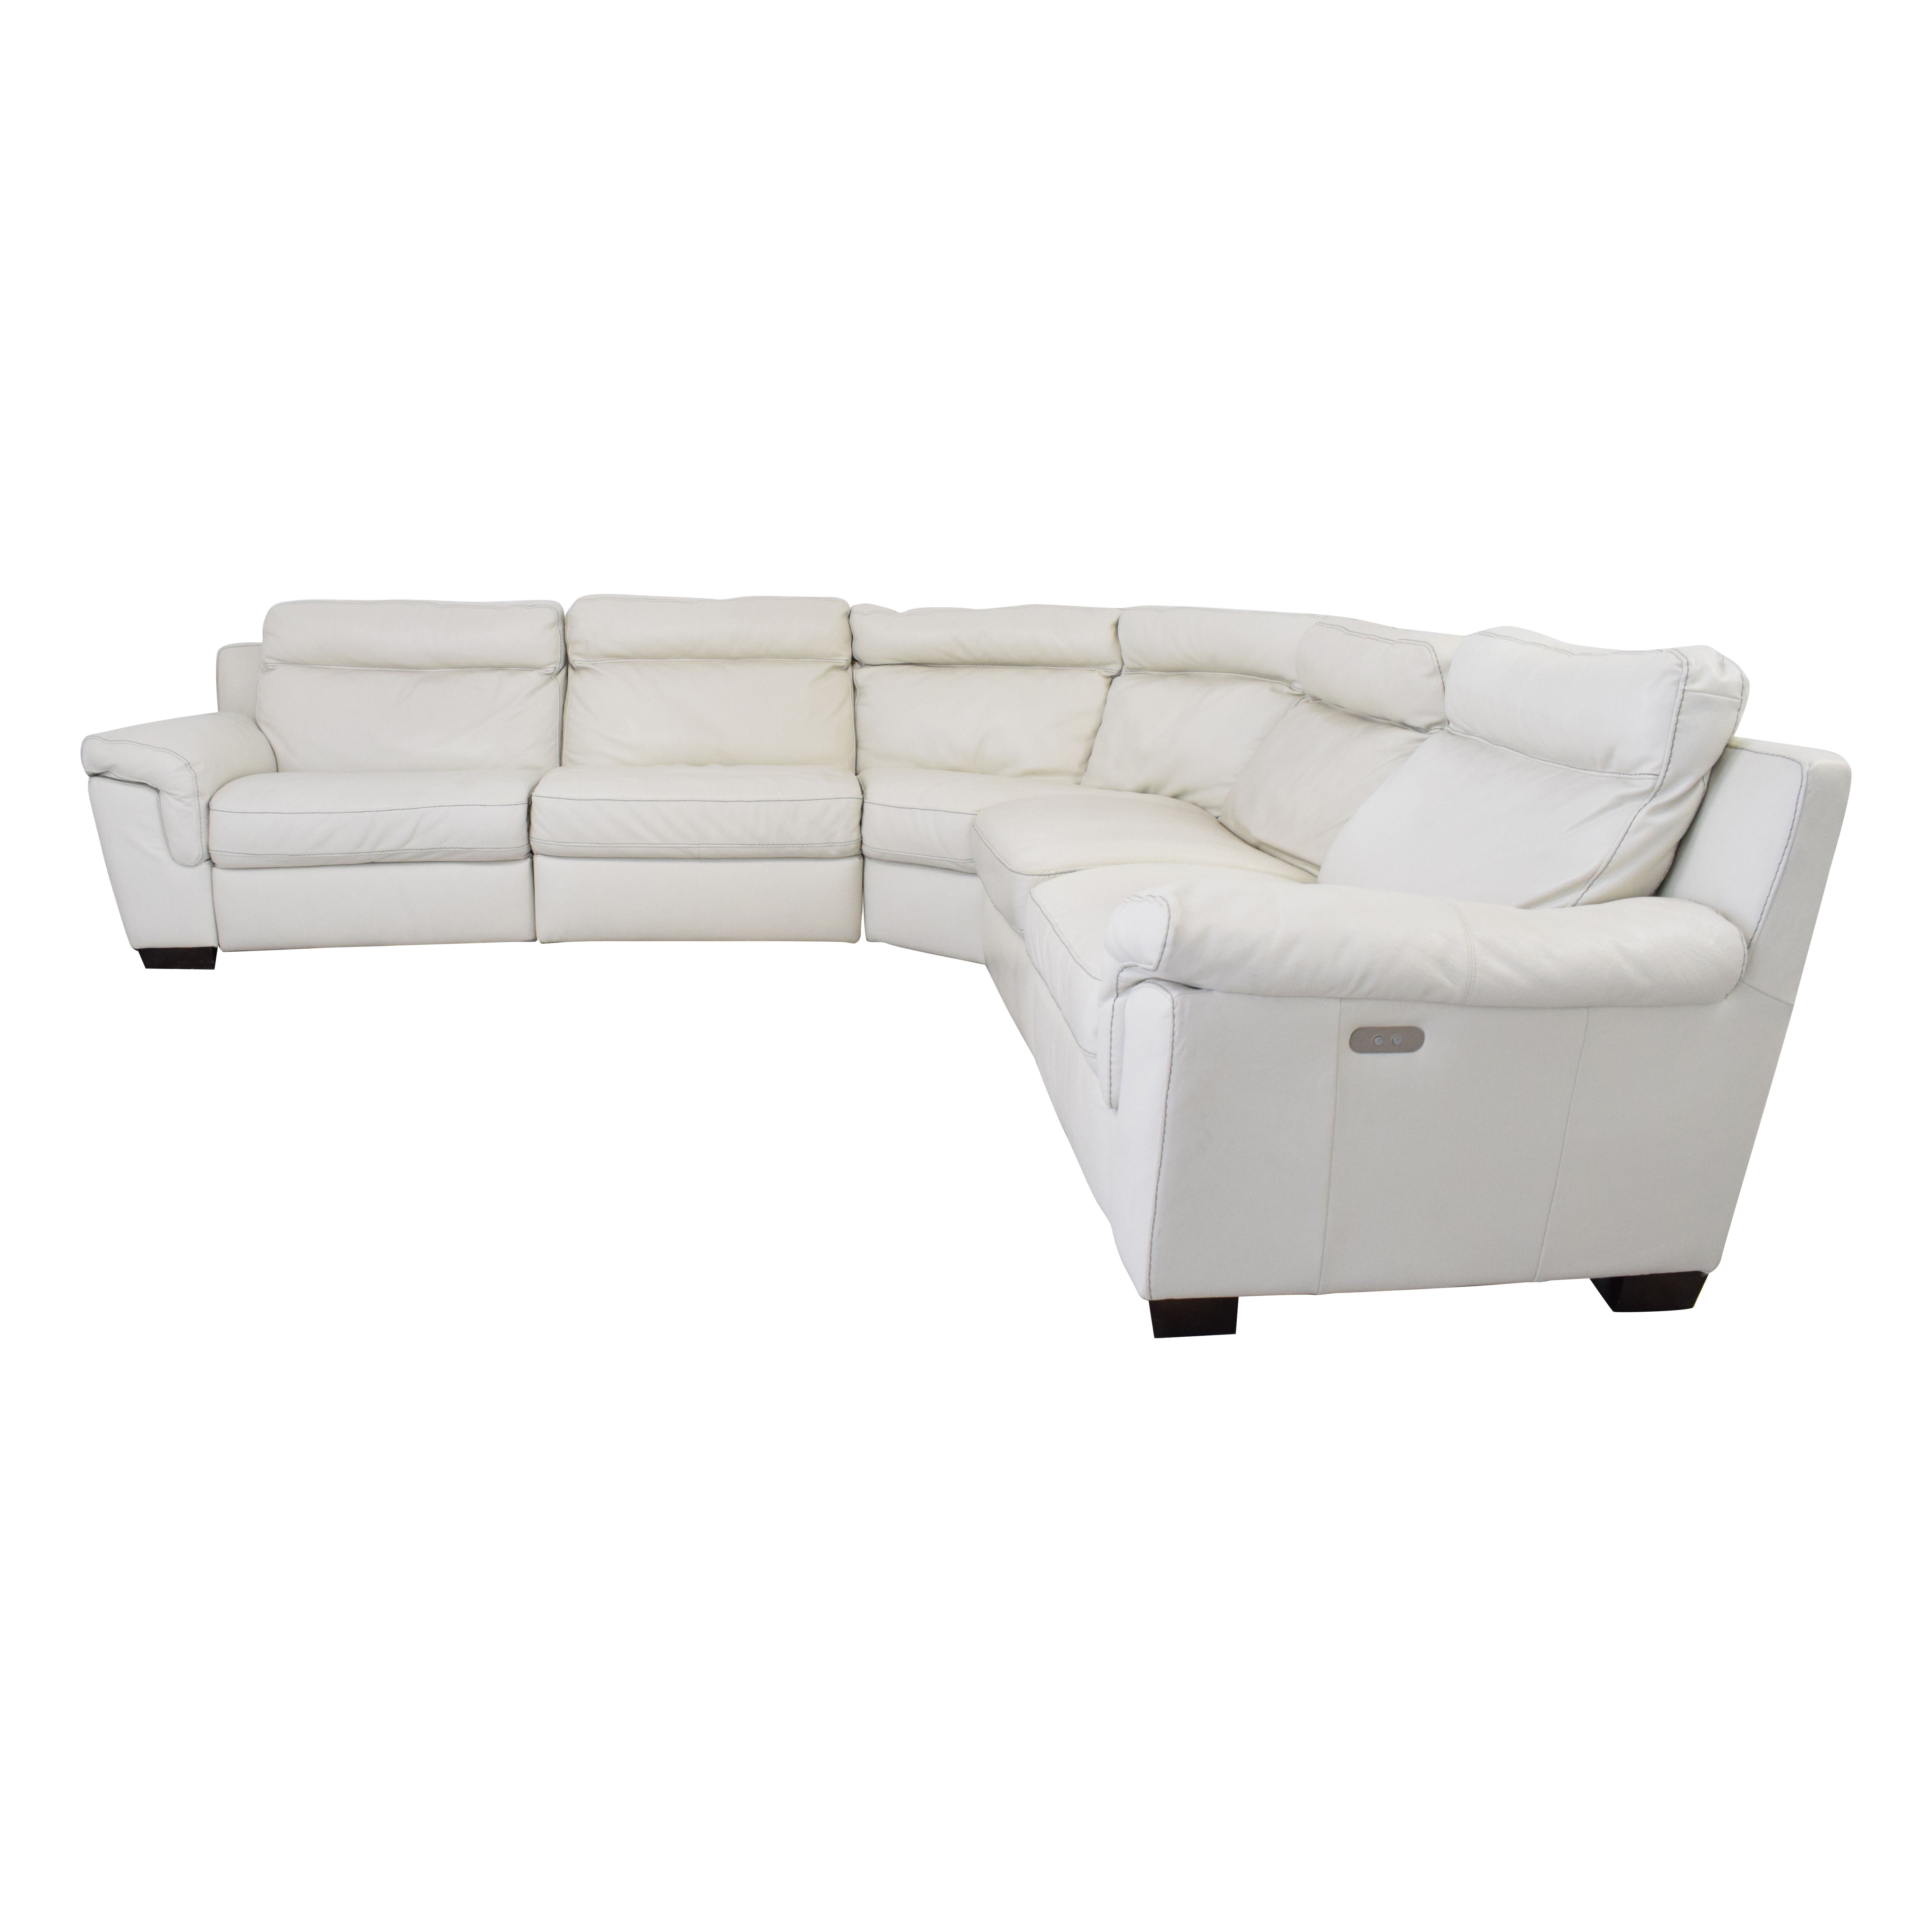 Macy's Macy's Leather Sectional Sofa with Reclining Seats dimensions